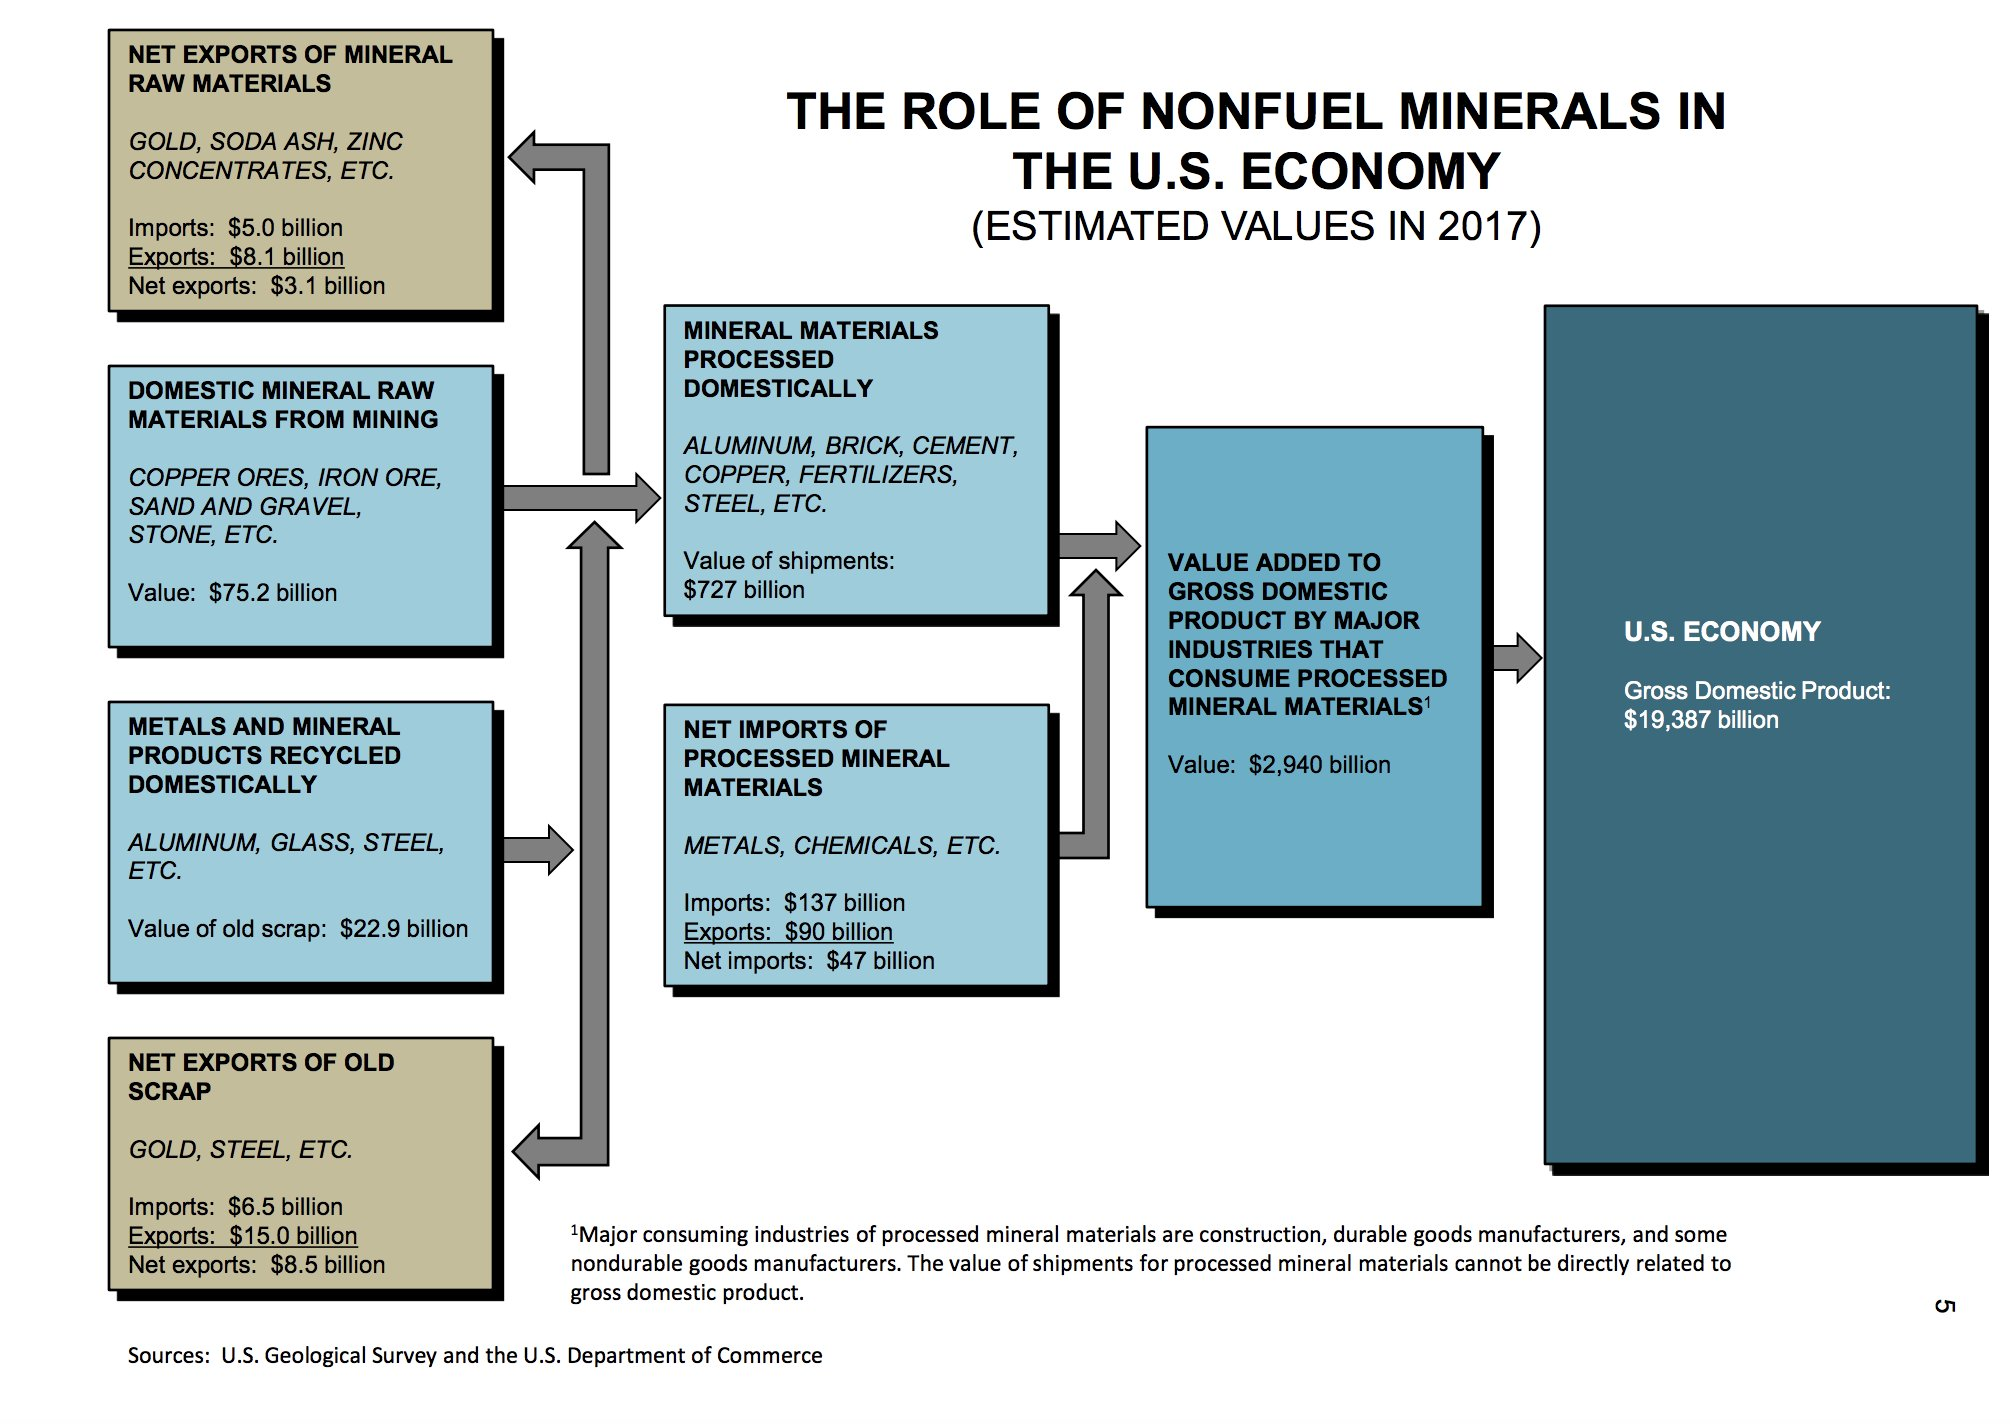 THE ROLE OF NONFUEL MINERALS…